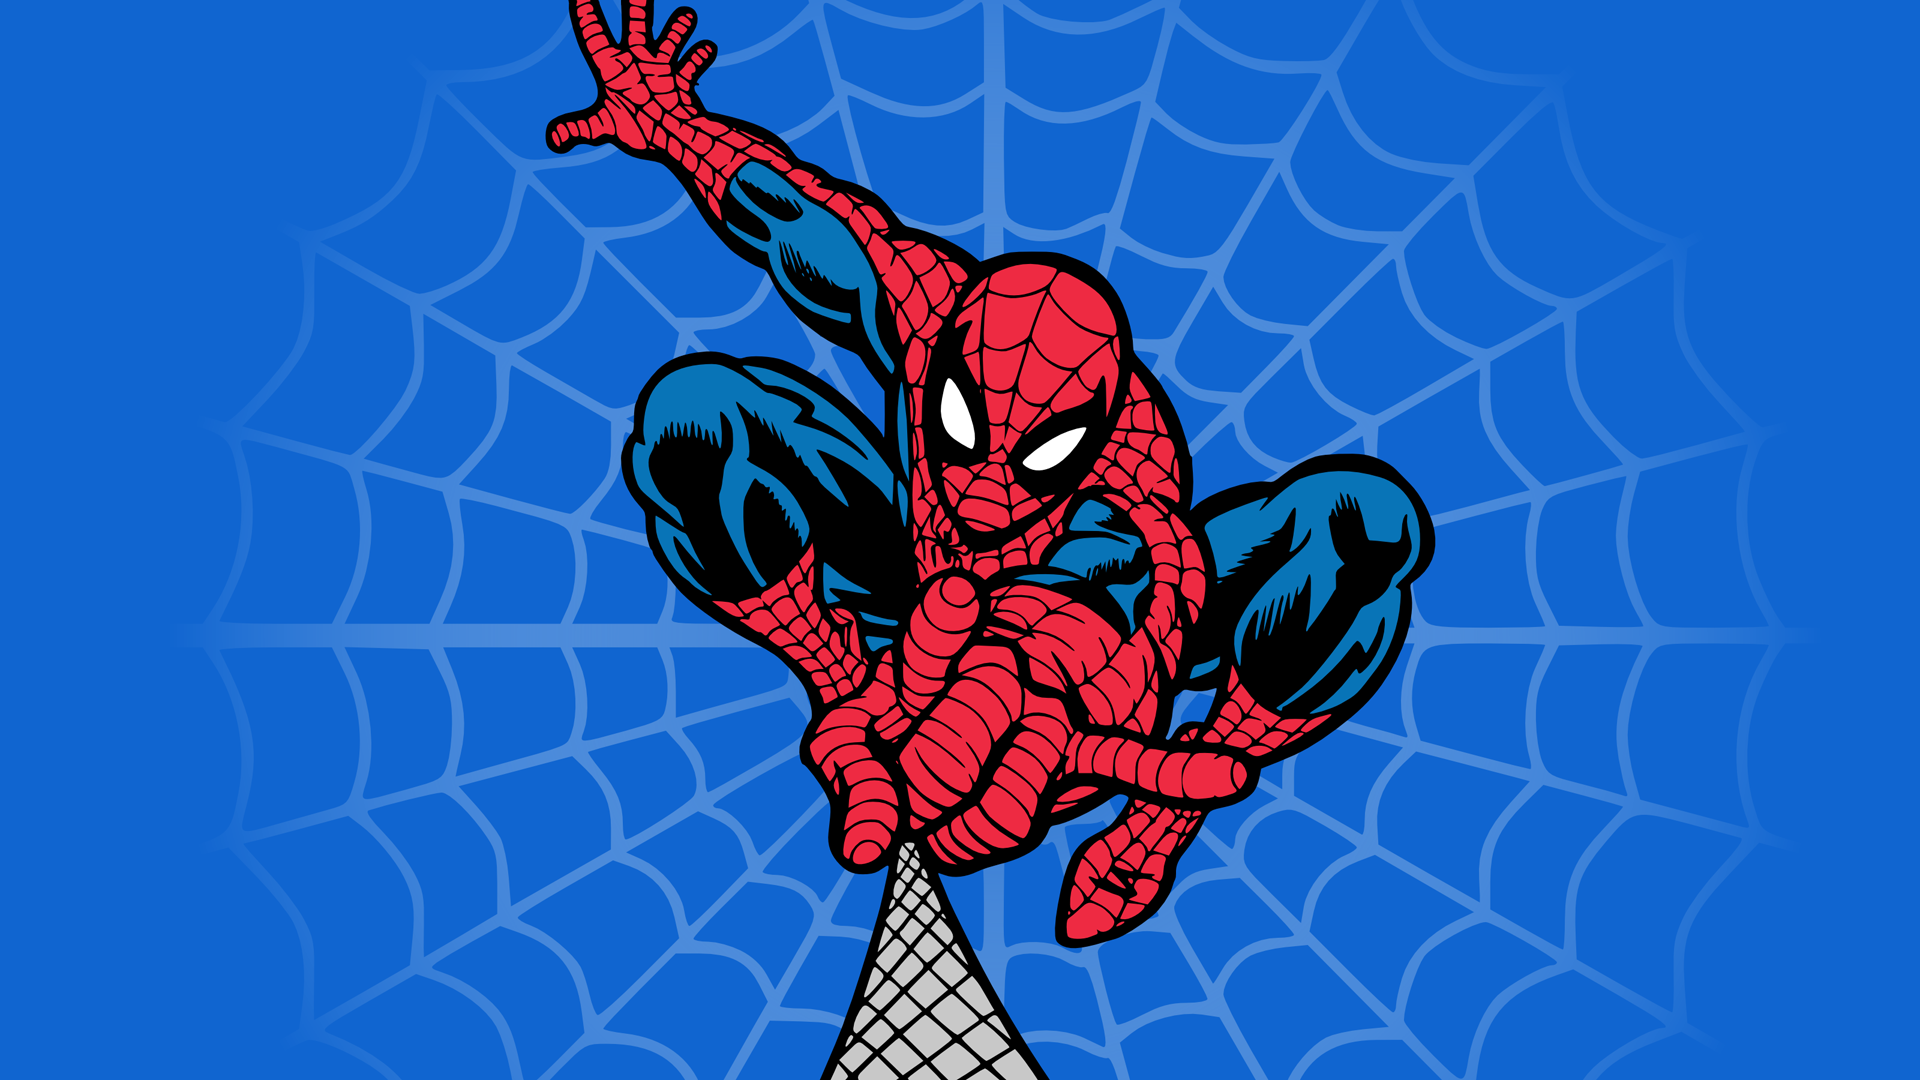 Spiderman Wallpapers In HD Group (92+)